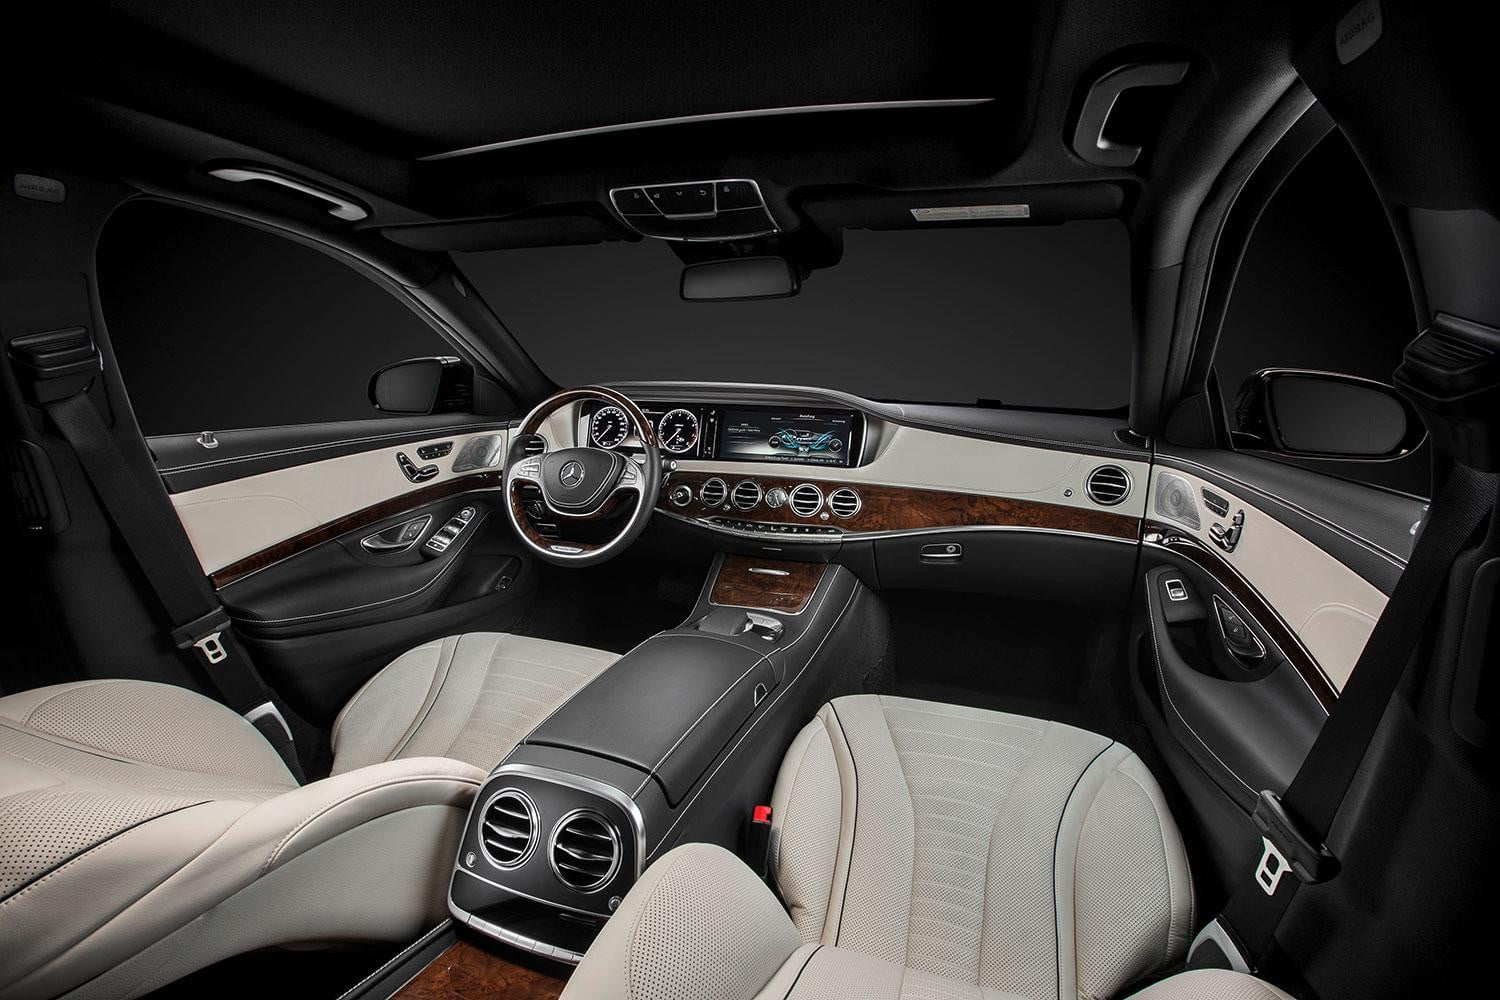 2015 mercedes benz s550 4matic review digital trends On mercedes benz s550 interior